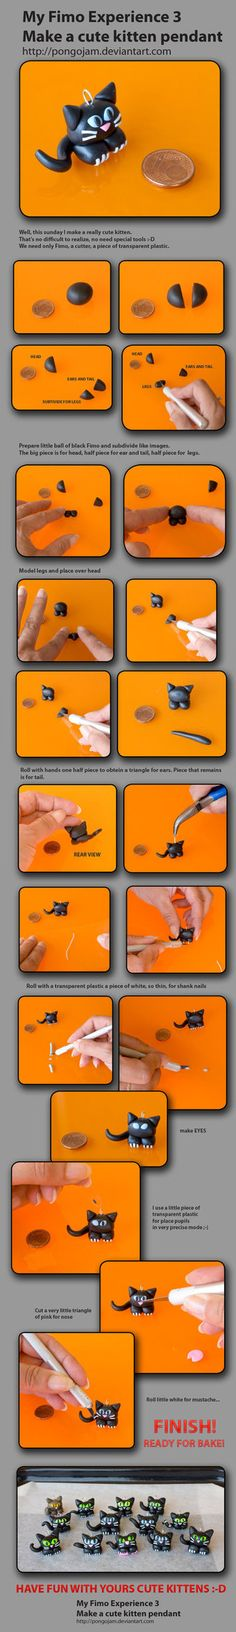 Make cute kitten FIMO TUTORIAL by *pongojam on deviantART